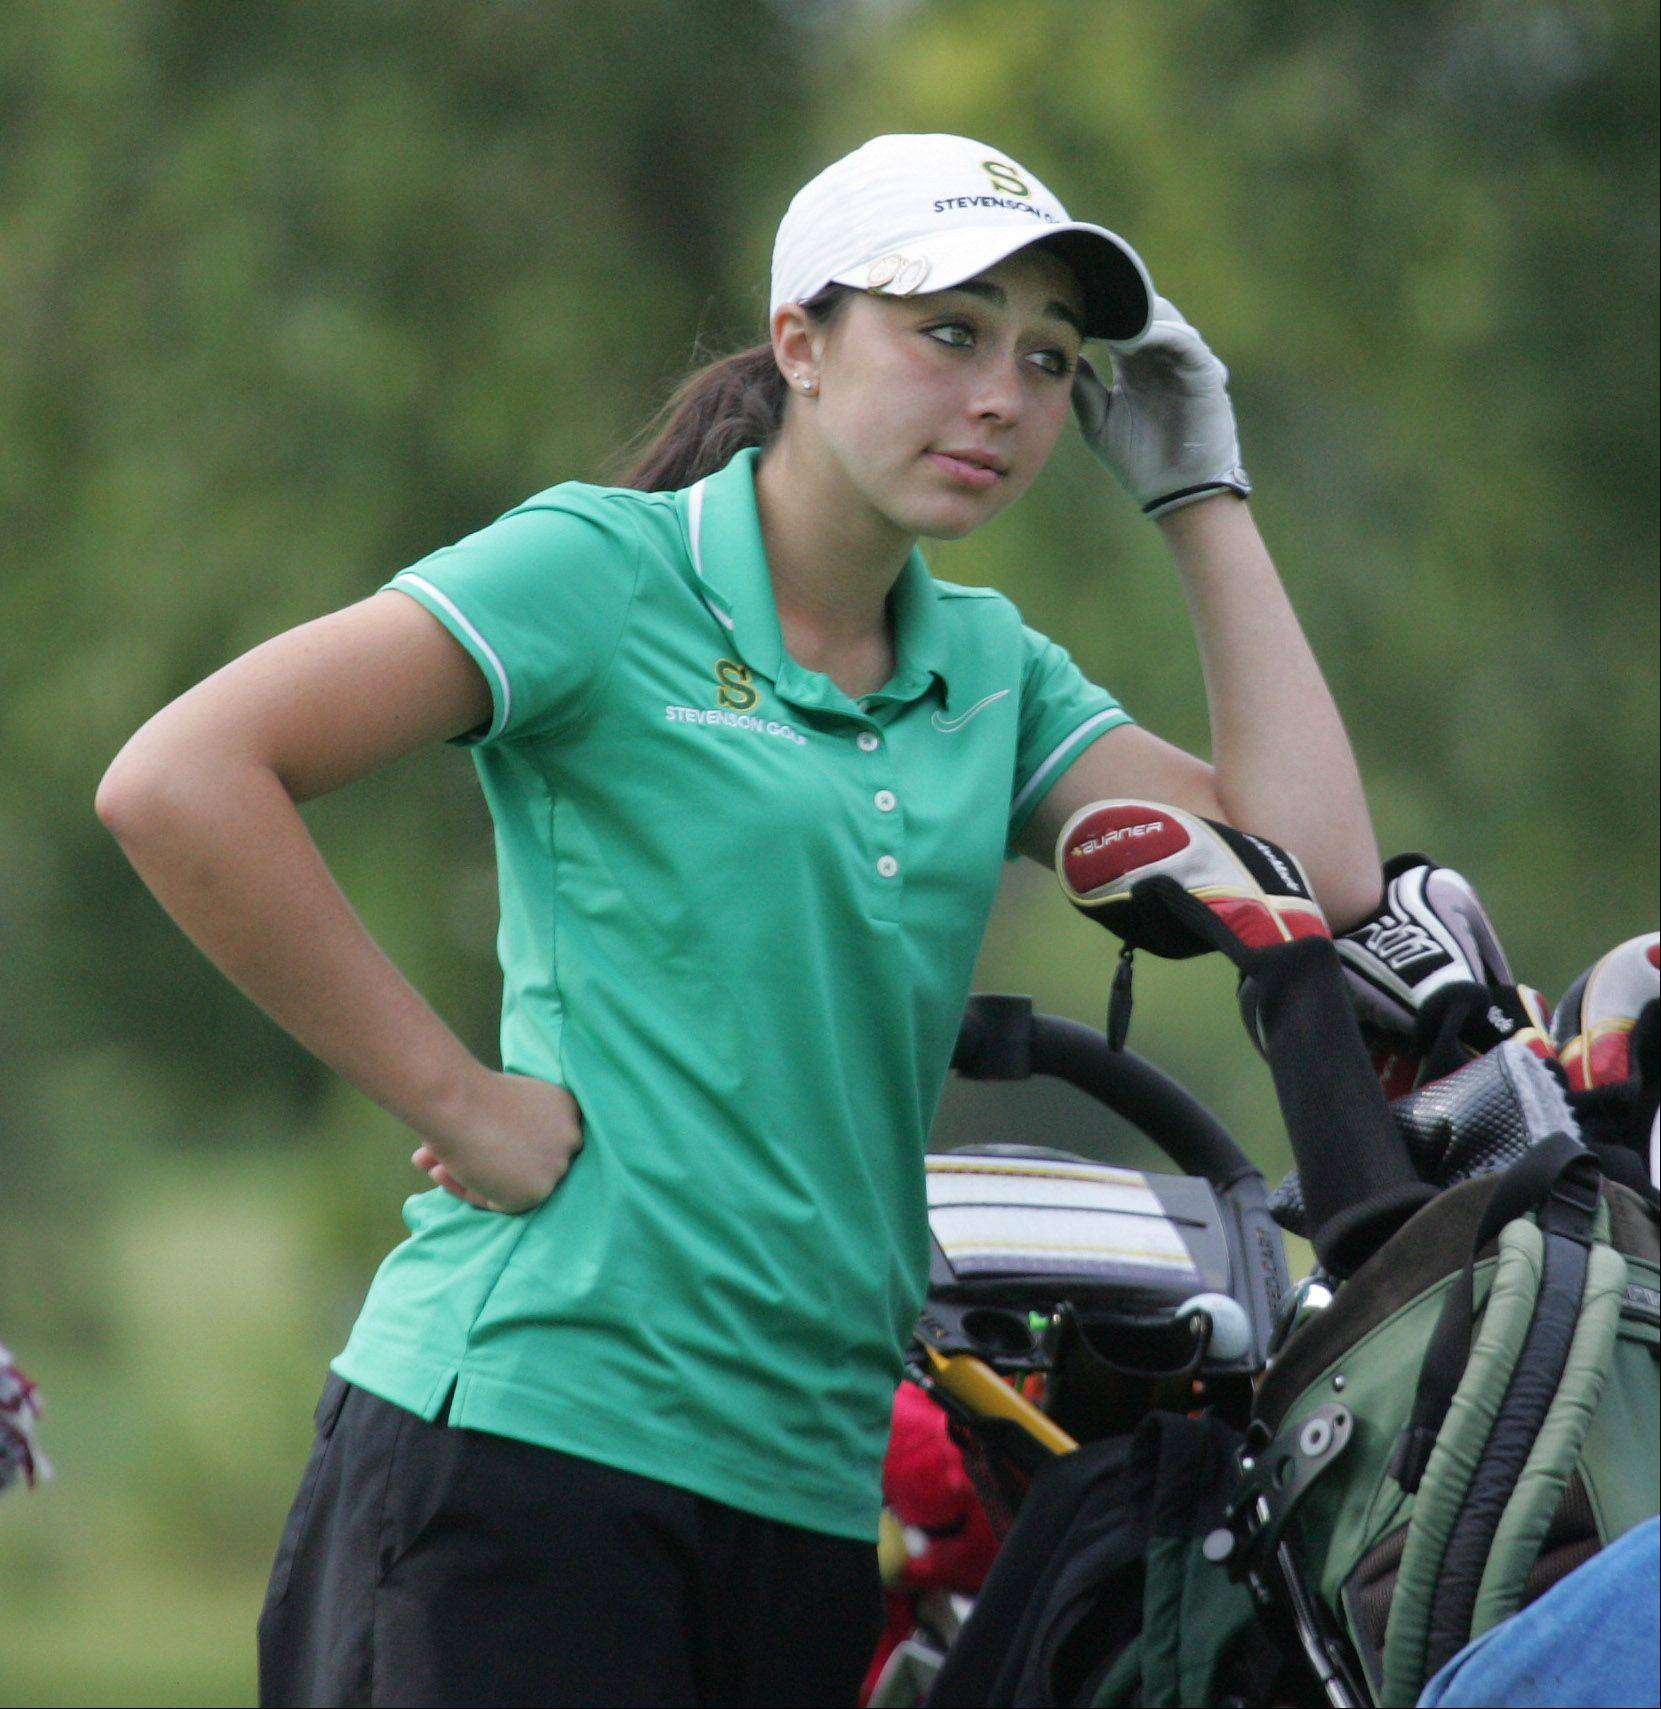 Stevenson golfer Stephanie Miller during the North Suburban Conference girls golf tournament Tuesday at Deerpath Golf Course in Lake Forest.